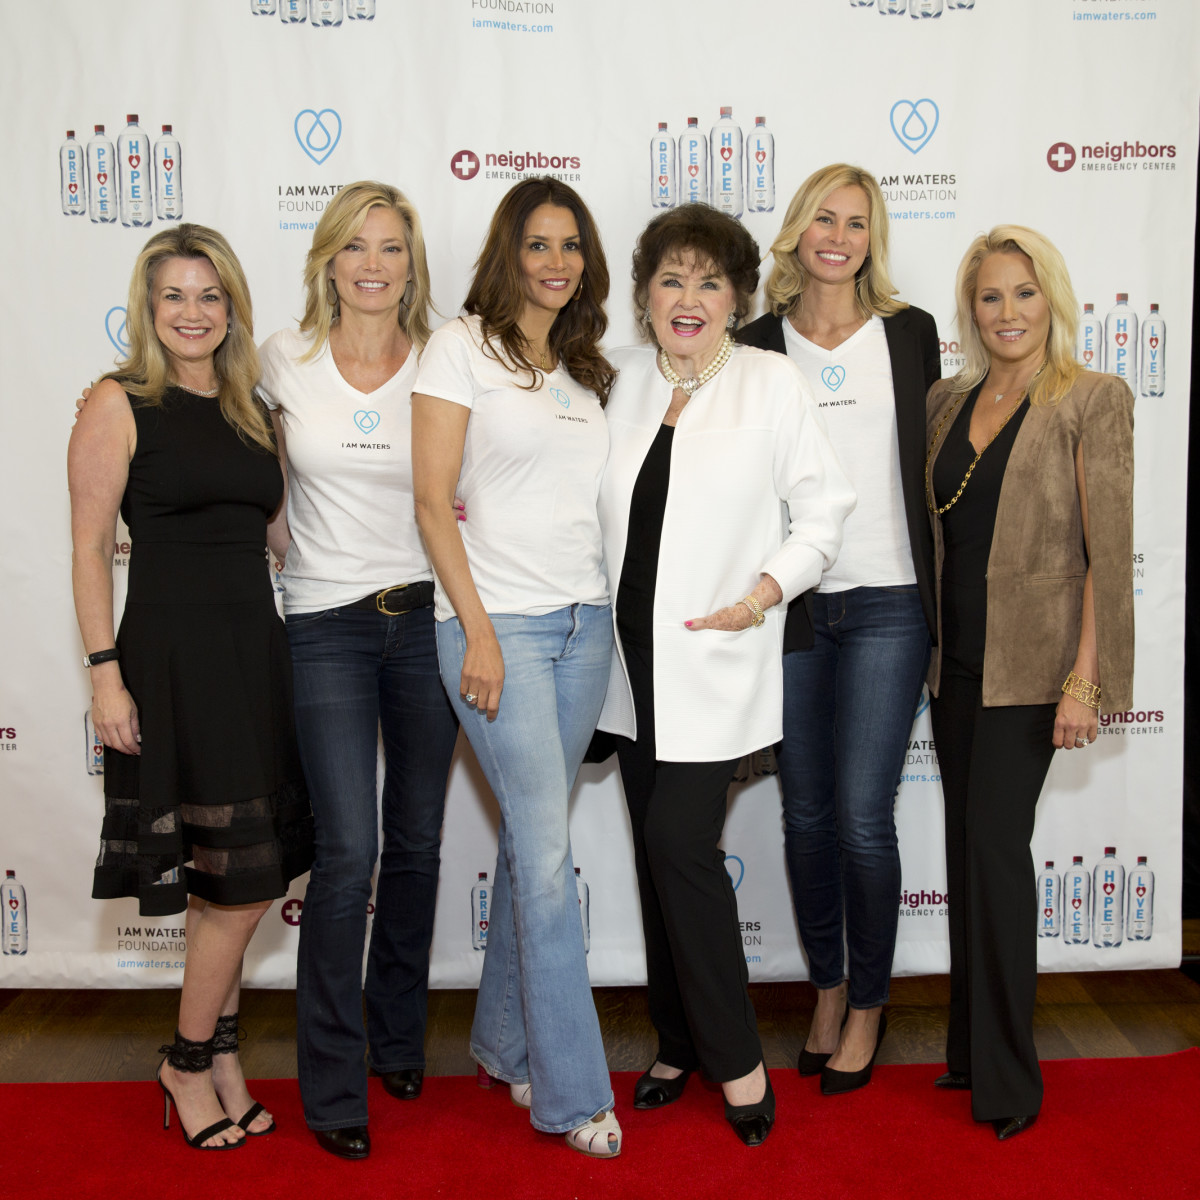 Houston, I Am Waters 5th Annual Supermodel Luncheon, May 2016, Millette Sherman, Kelly Emberg Kara Young, Warner Roberts, Niki Taylor, Jill Faucetta